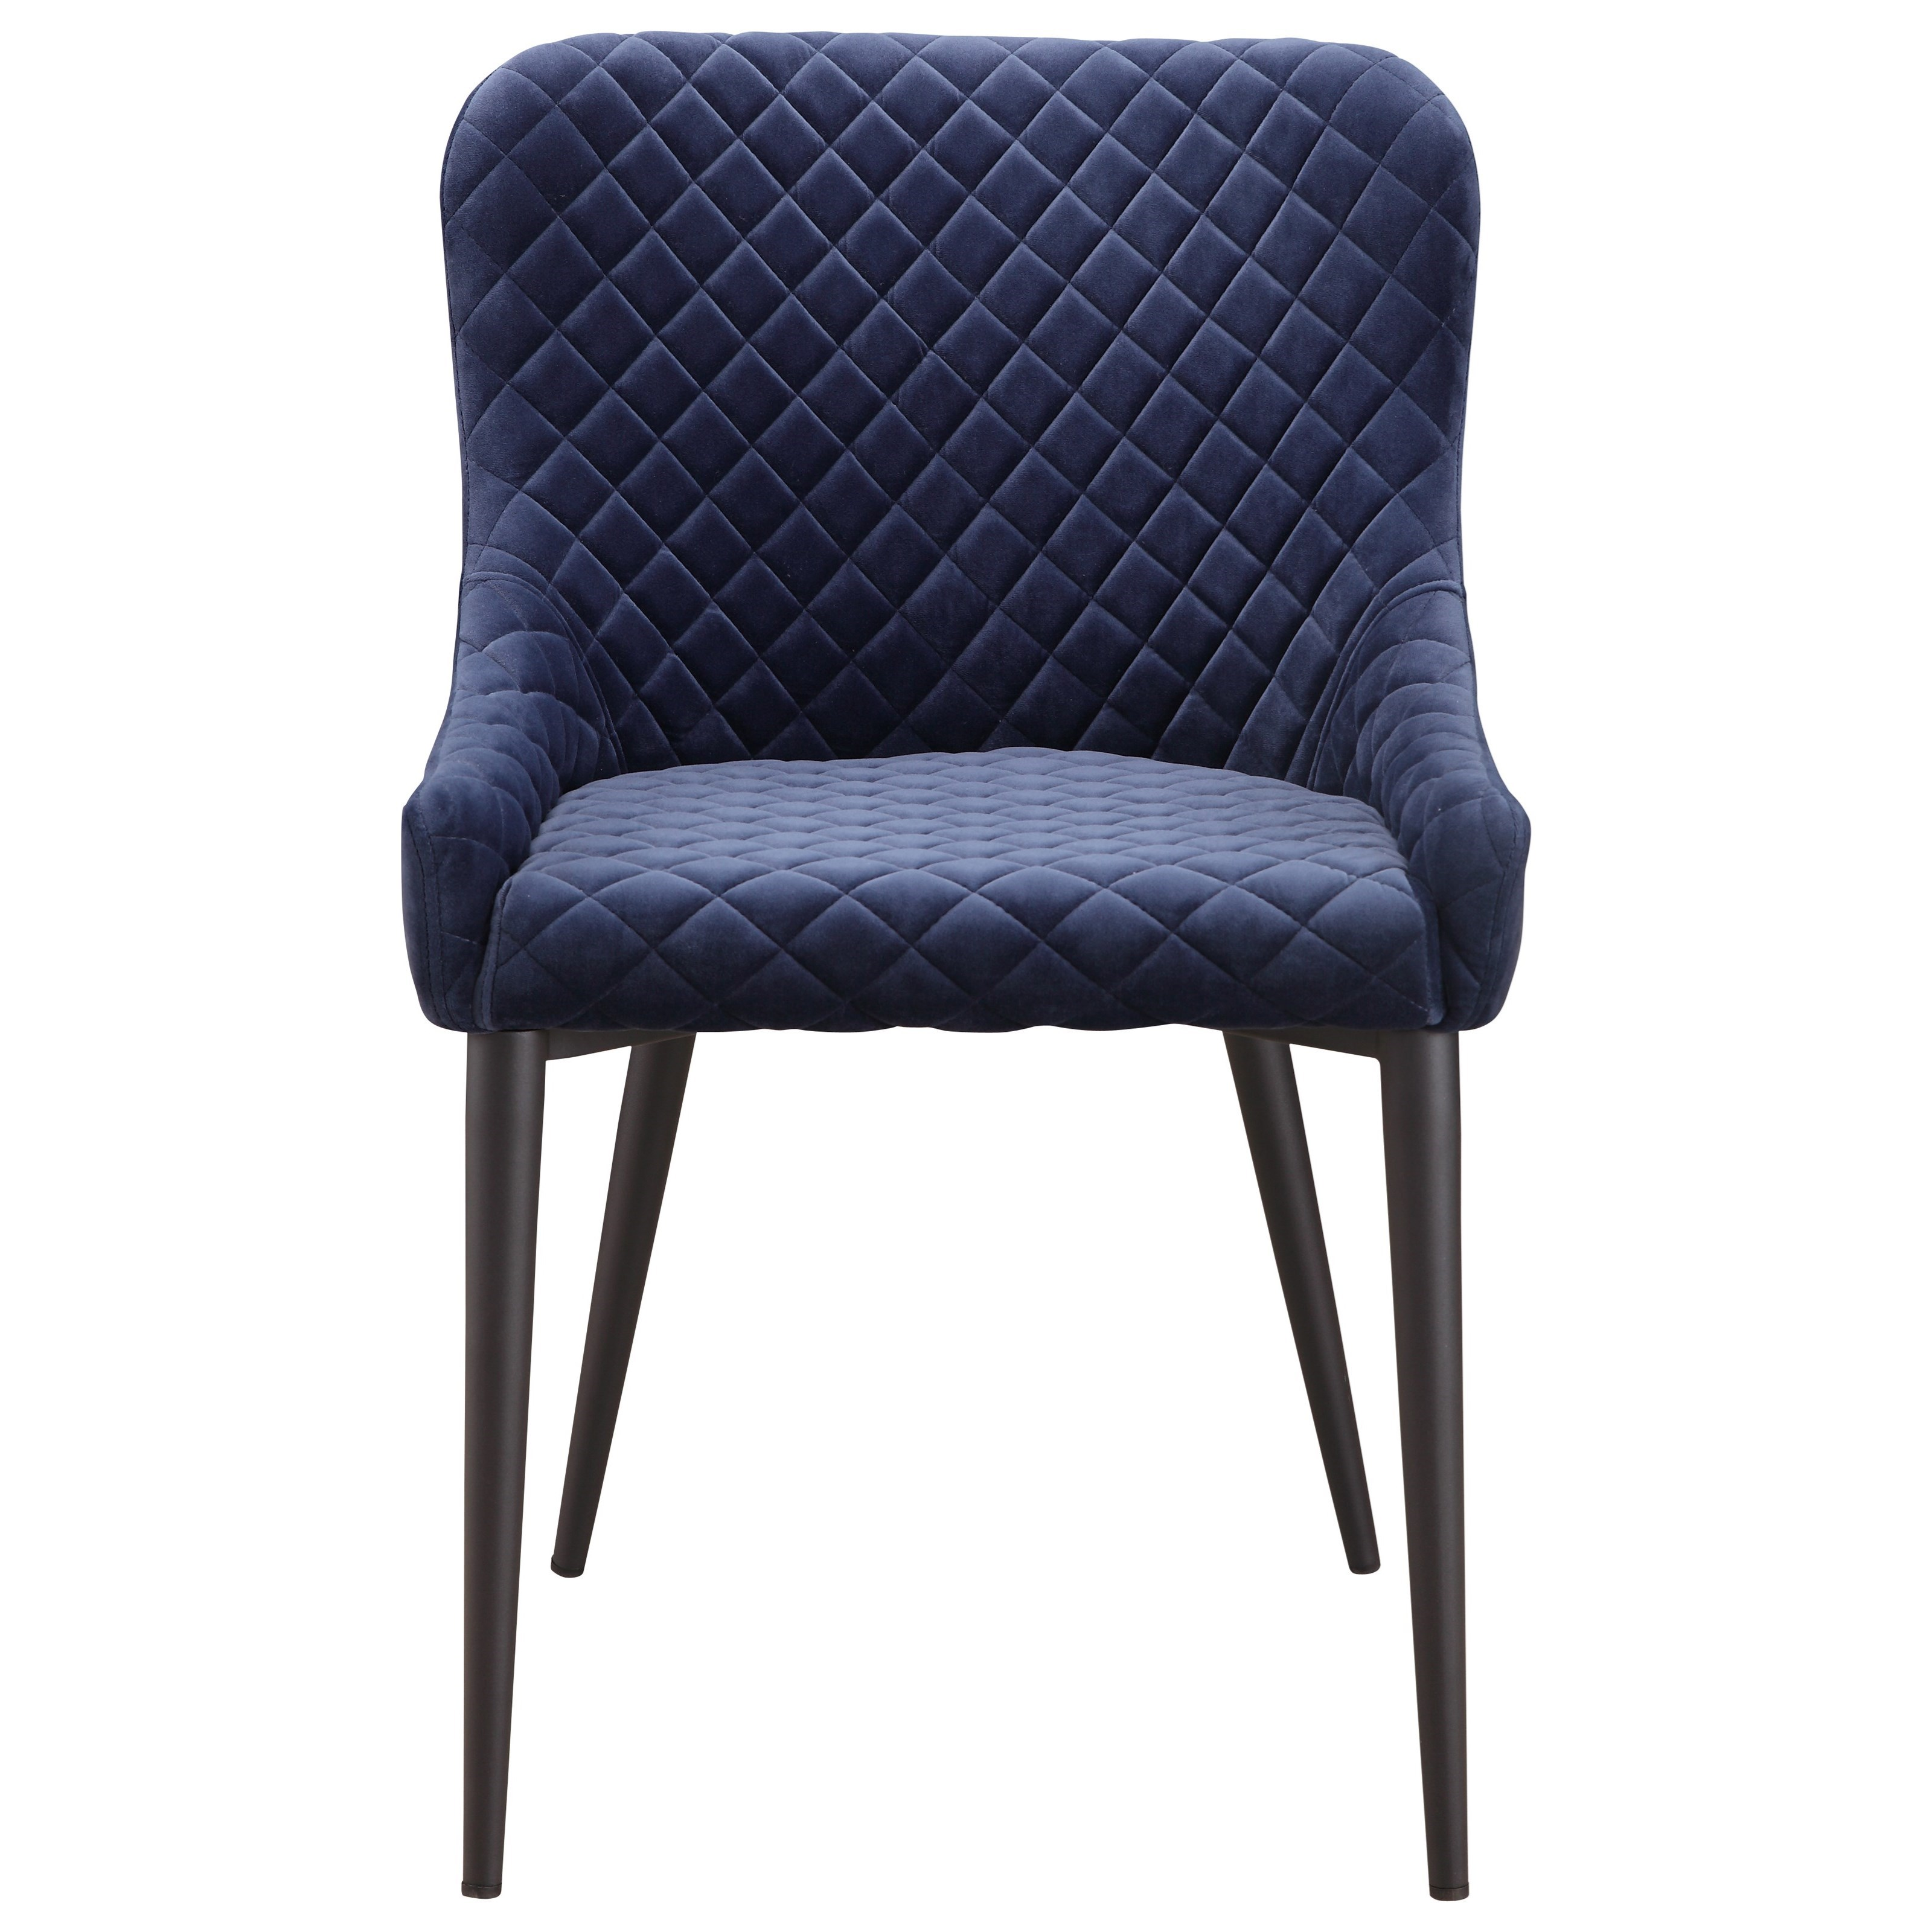 Etta Dining Chair by Moe's Home Collection at Stoney Creek Furniture